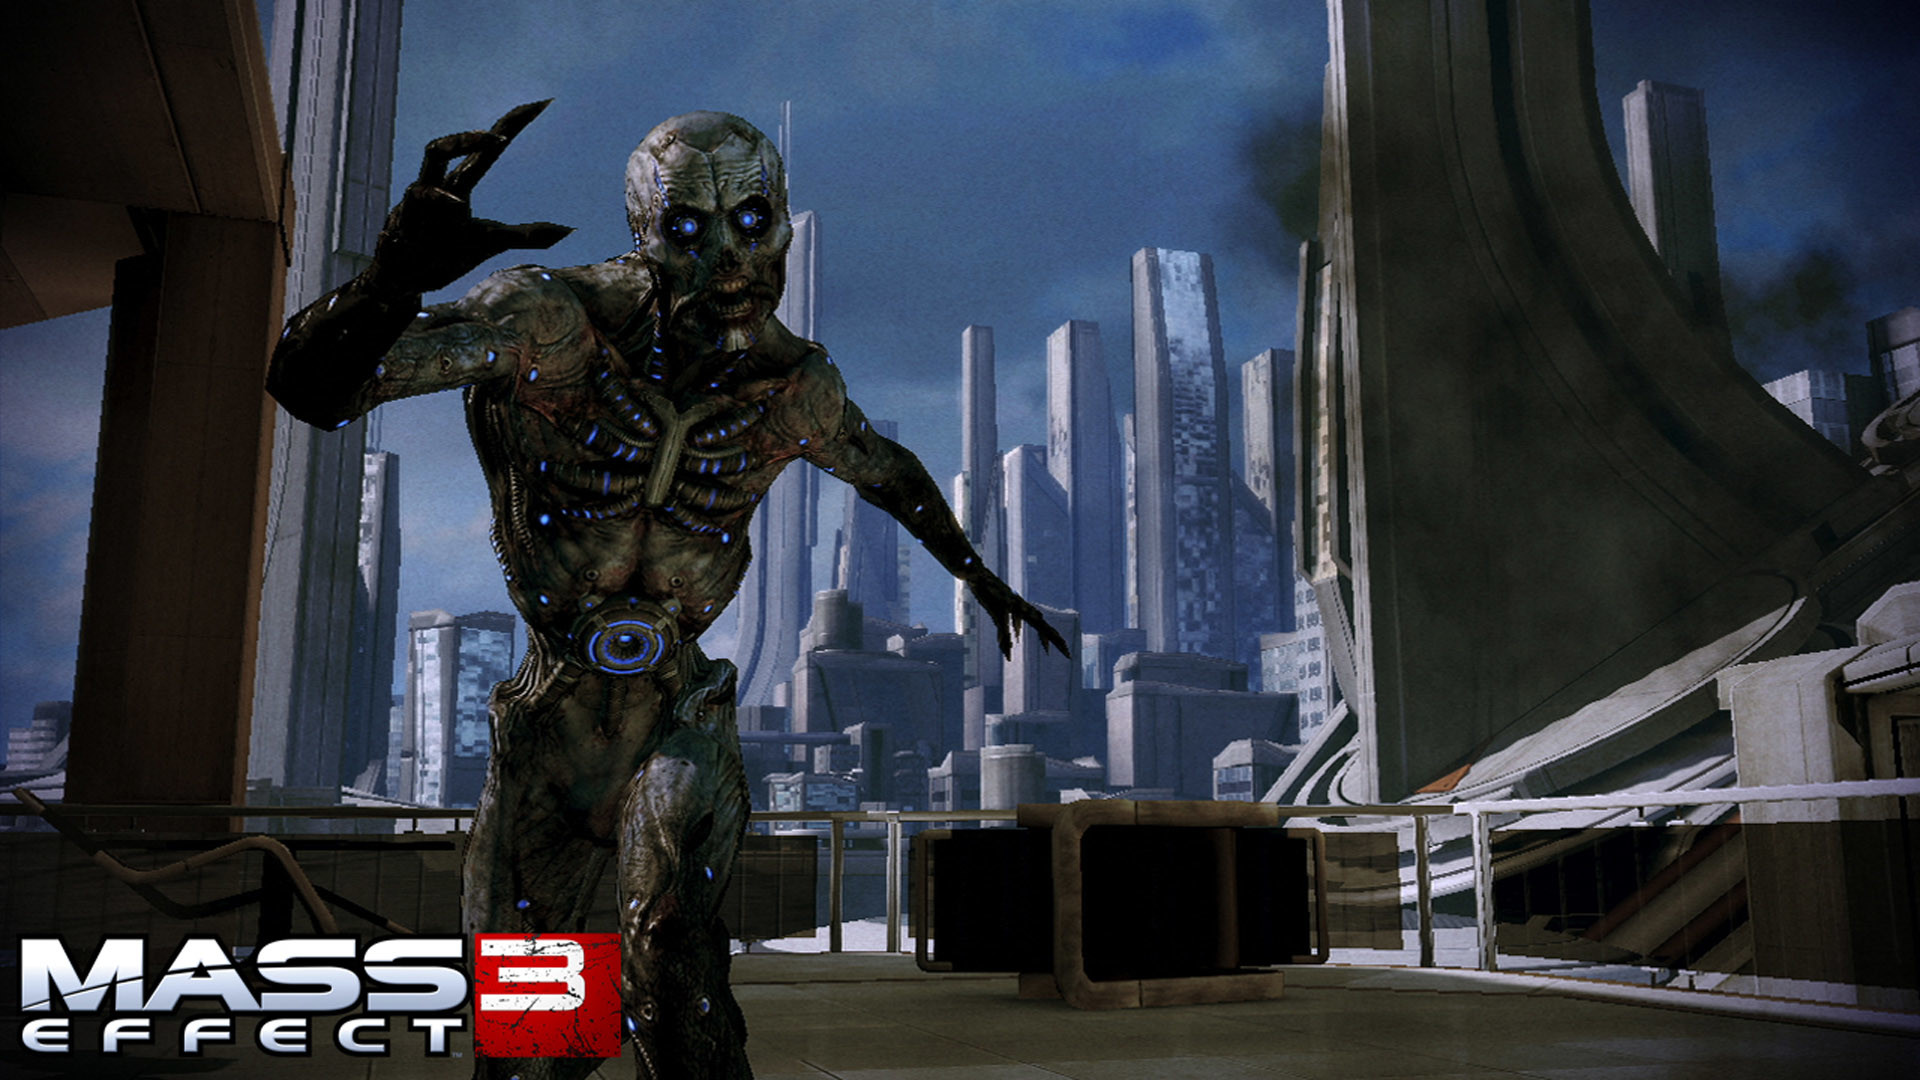 Kolby jukes mass effect 3 husk combat screenshot